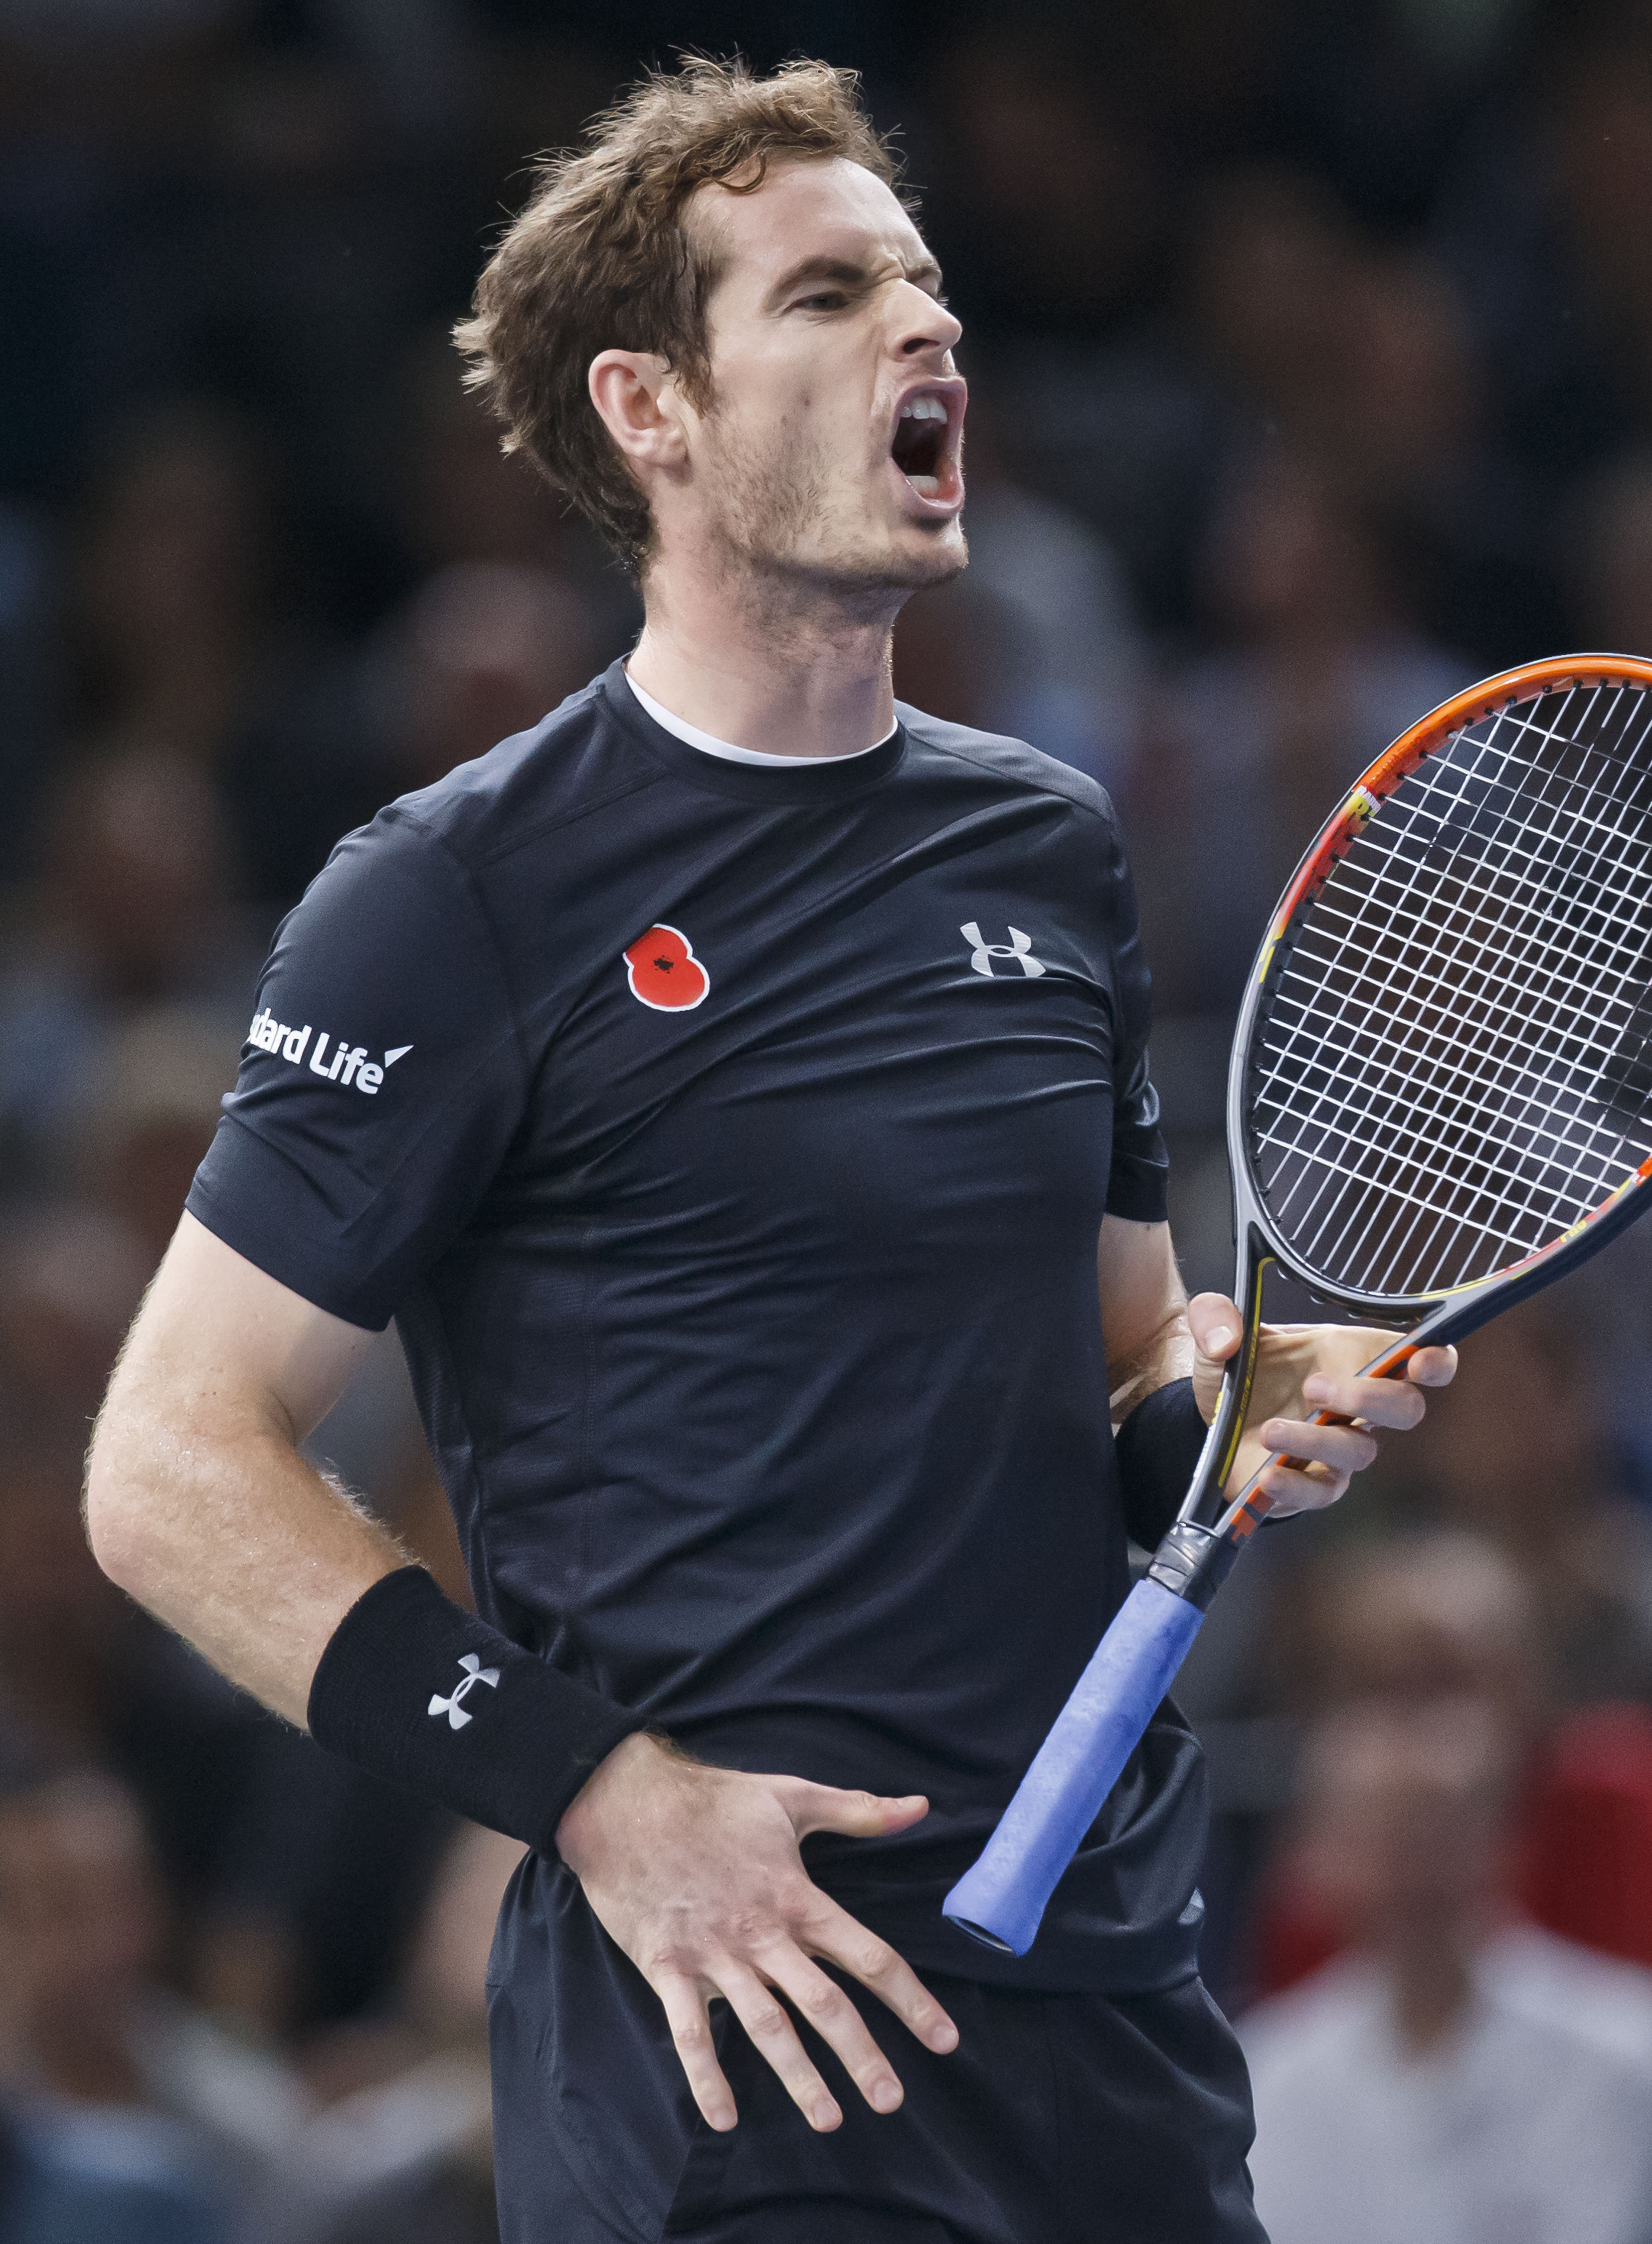 Britain's Andy Murray reacts after losing a point against Spain's David Ferrer during their semifinal match of the BNP Masters tennis tournament at the Paris Bercy Arena, in Paris, France, Saturday, Nov. 7, 2015. (AP Photo/Michel Euler)